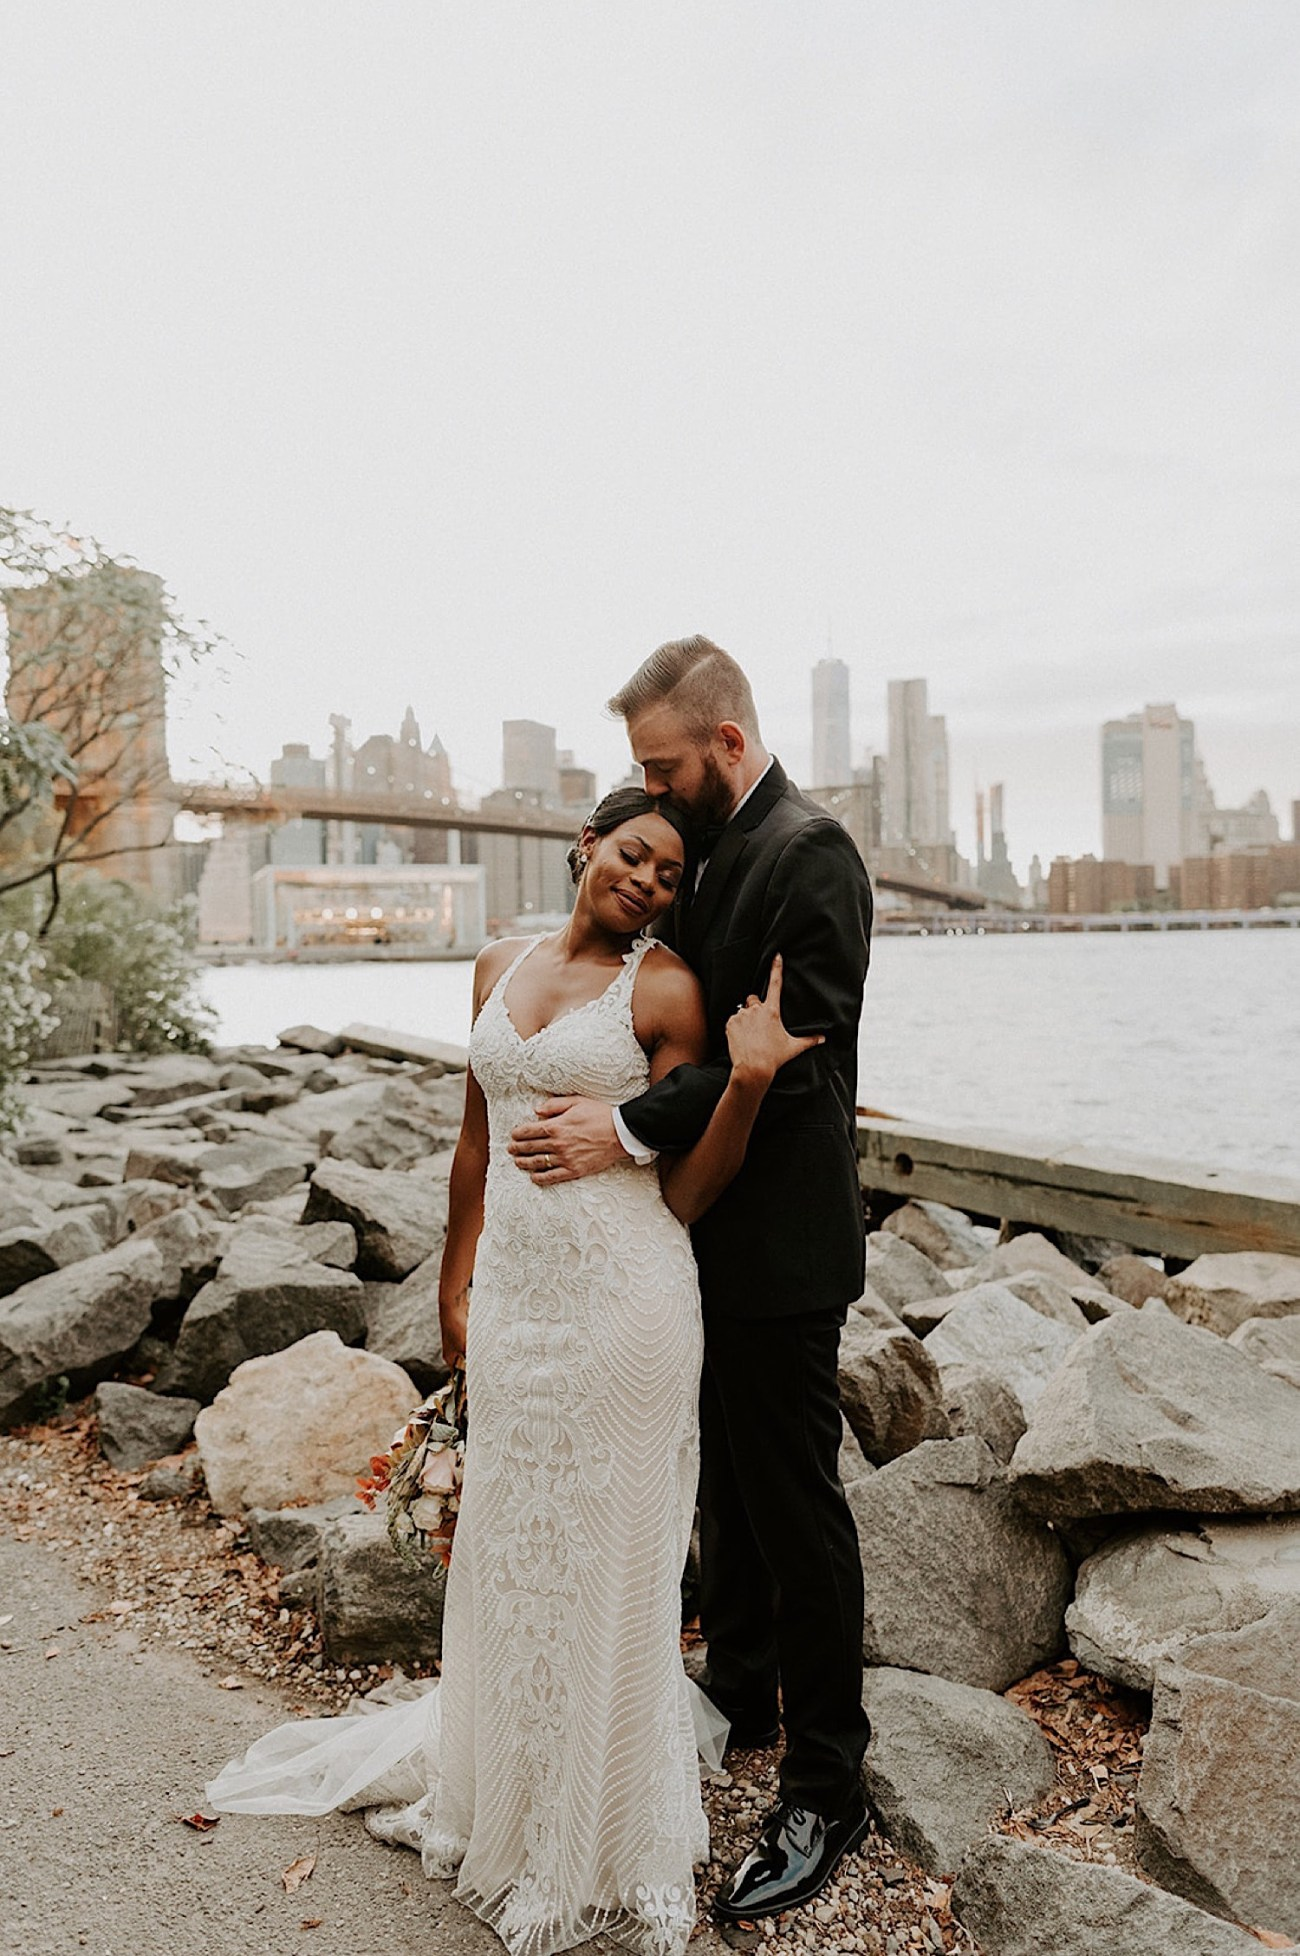 024 Brooklyn Dumbo Elopement Brooklyn Wedding Photographer NYC Wedding Destination Elopement